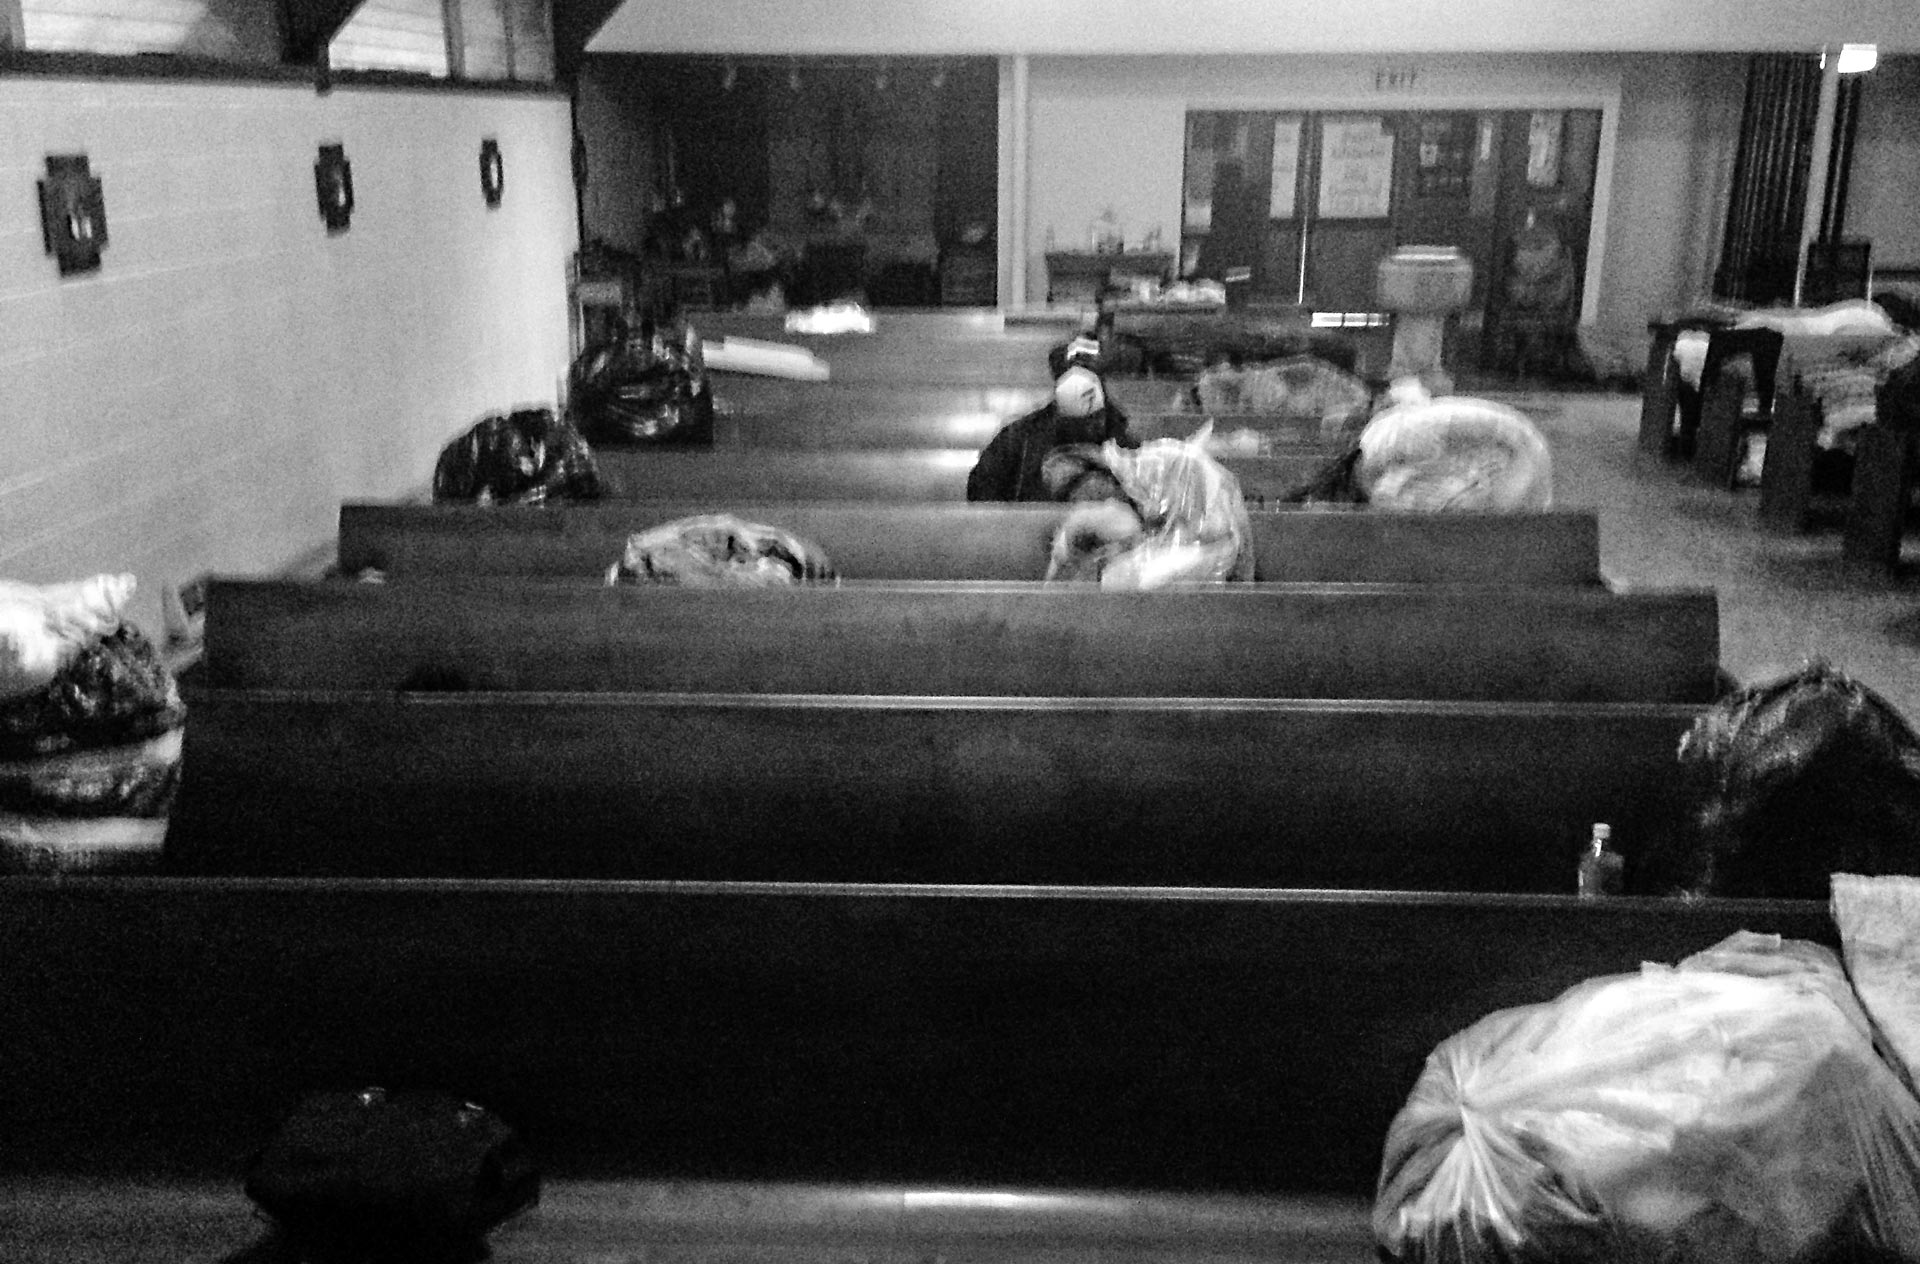 About 30 people sought shelter from wet winter storms last week inside the sanctuary at All Souls Episcopal Church in L.A.'s Highland Park neighborhood.